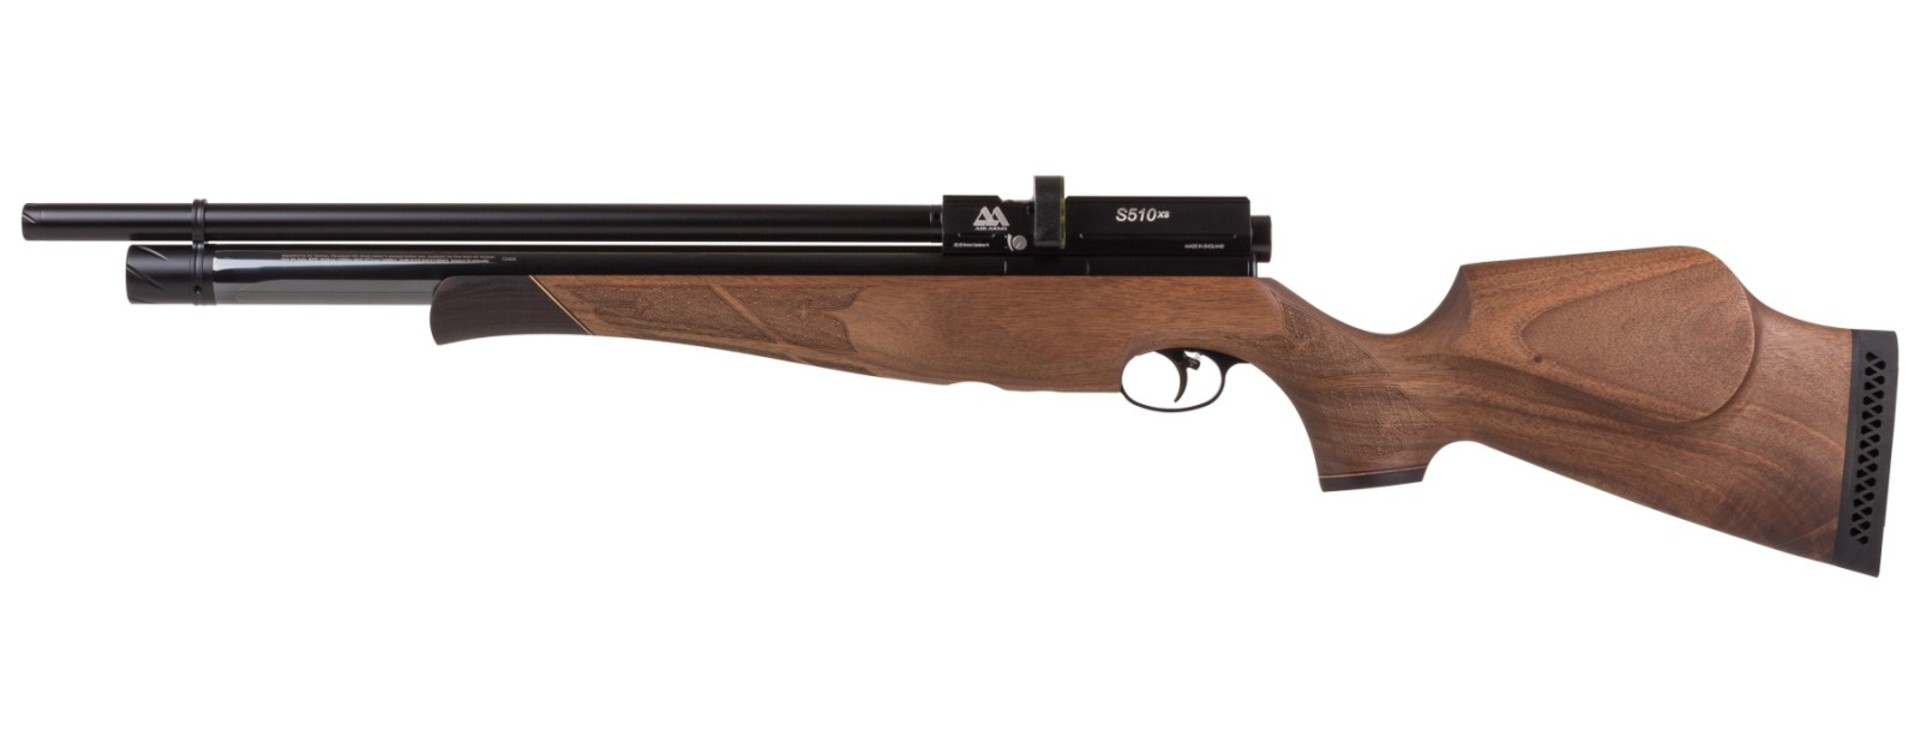 REGULATED PCP CARBINE